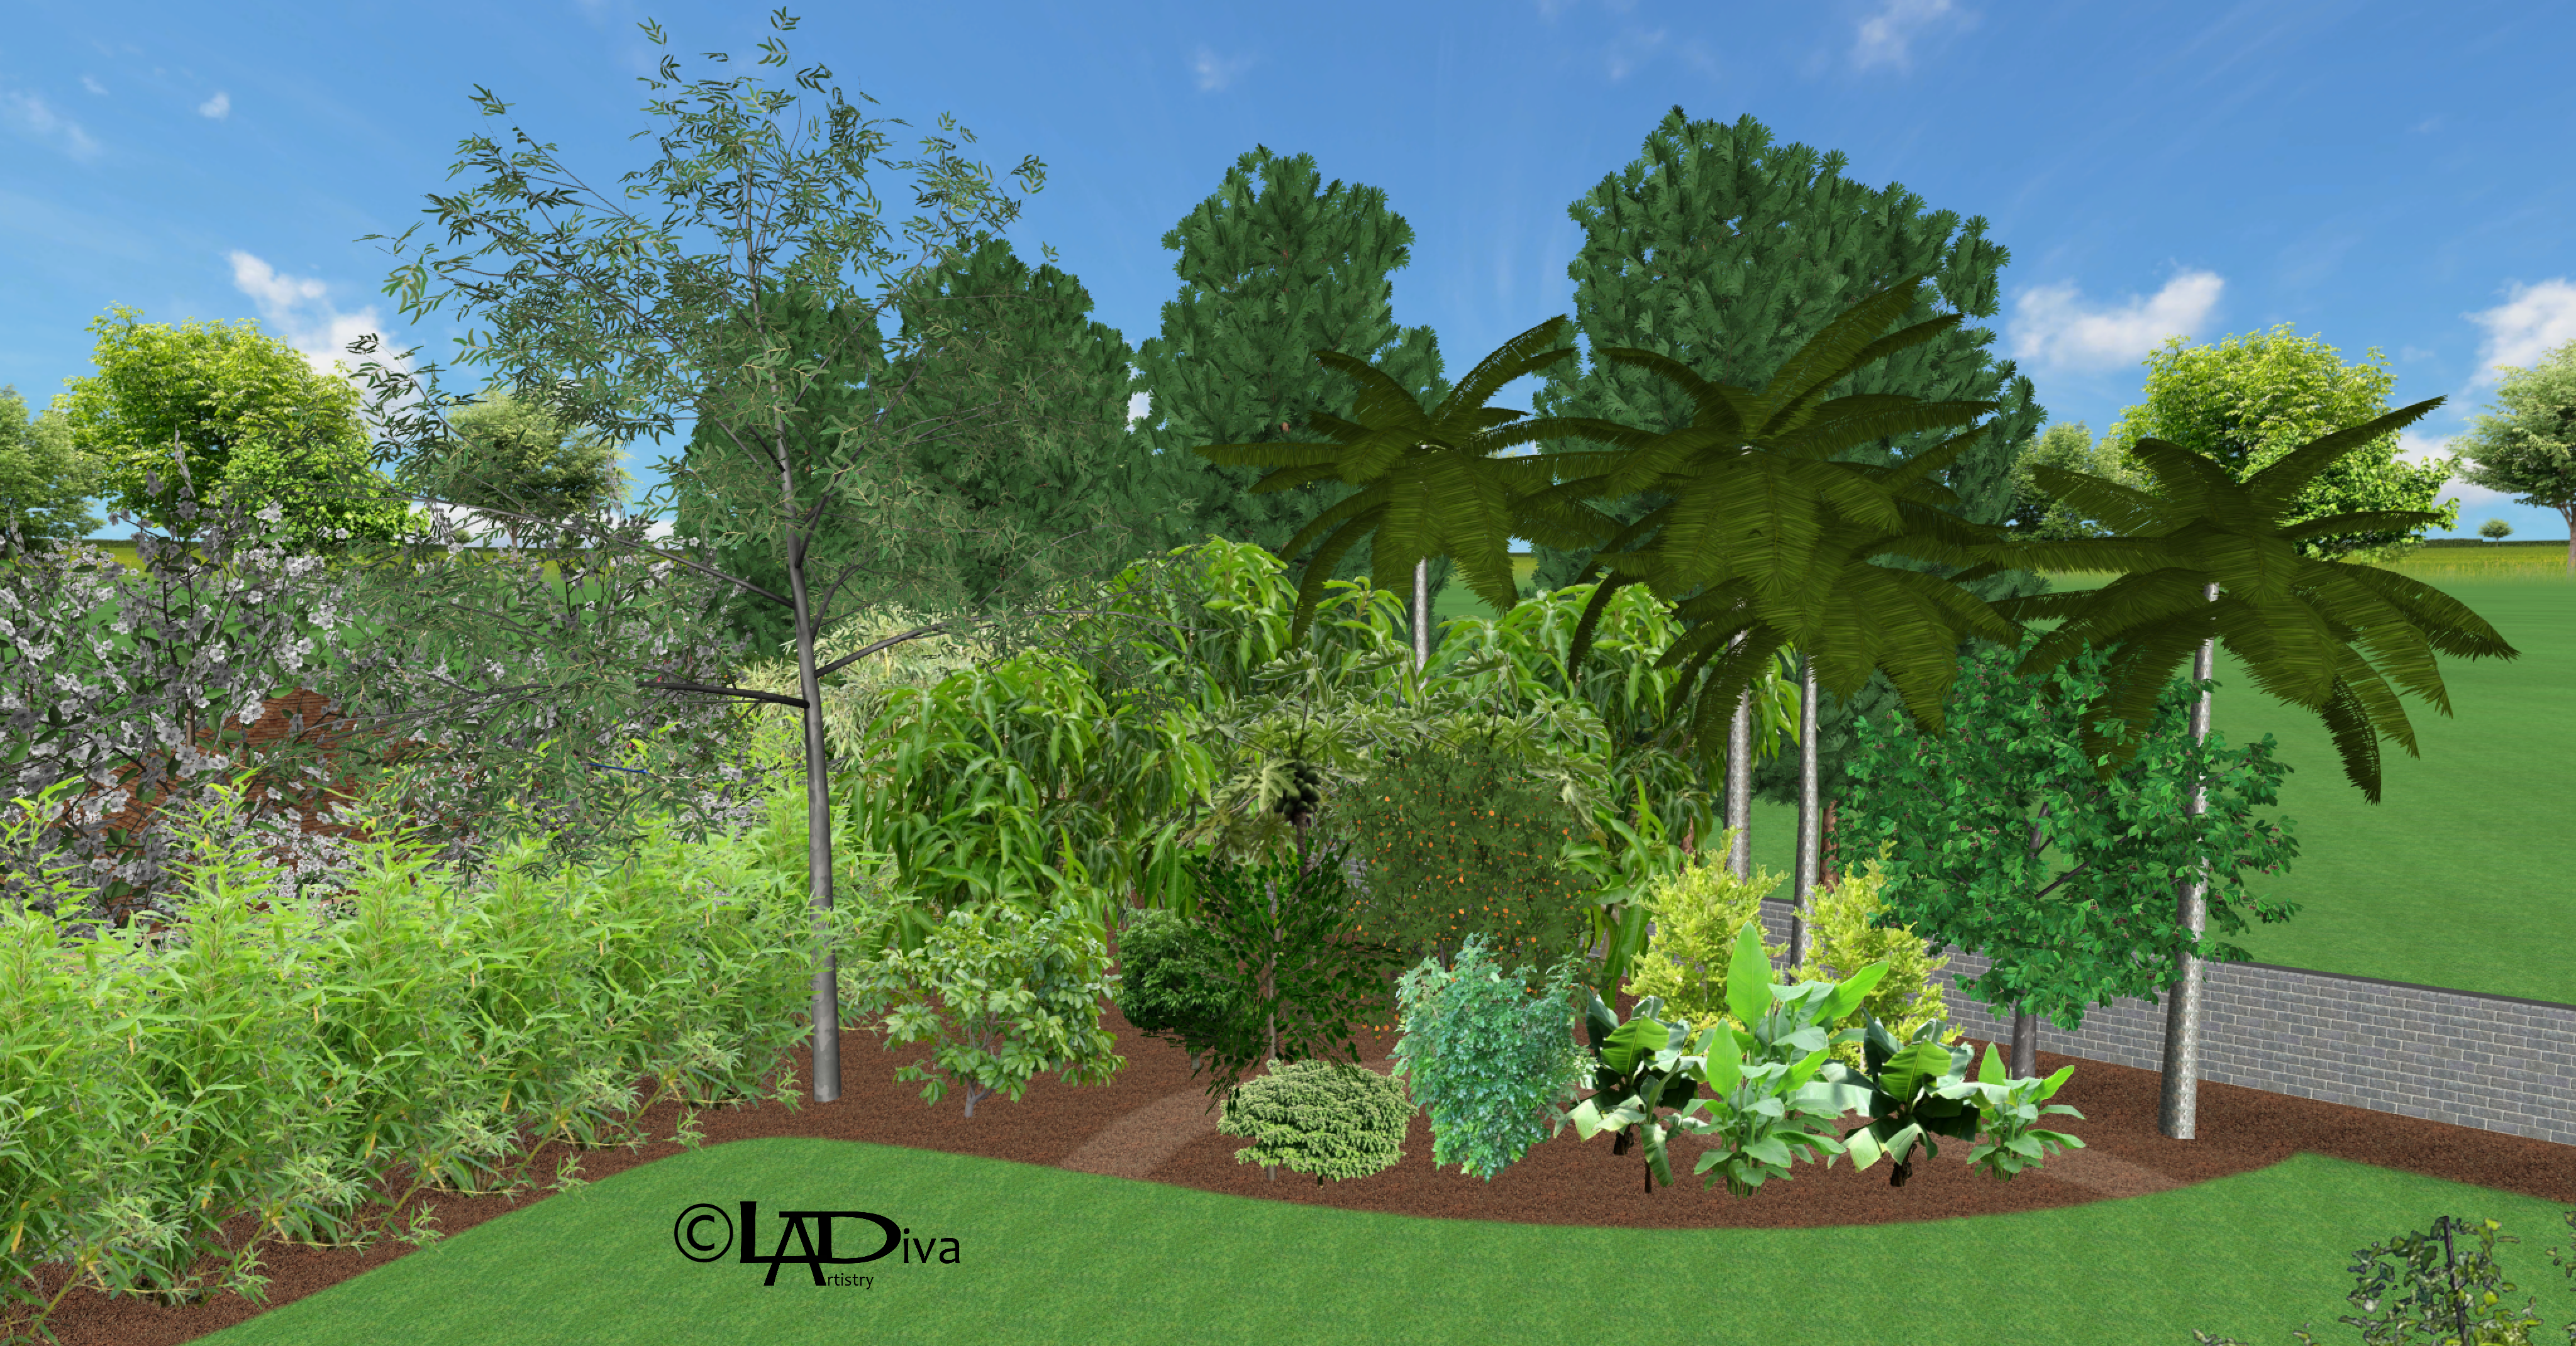 Edible Demonstration Garden Featuring Tropical Fruit Trees, Flood Irrigation Planning - Laveen, AZ ©LADiva Artistry Landscape Design Solutions, specializing in edible & tropical garden design in Gilbert, AZ. Featuring Custom 2D Color Master Landscape Design Plans and 3D Virtual Walkthrough Tours. Cultivating beautiful, productive oases in the greater Phoenix, Arizona area showcasing tropical trees, fruit trees, edible plants & herbs in low maintenance, stunning gardens.